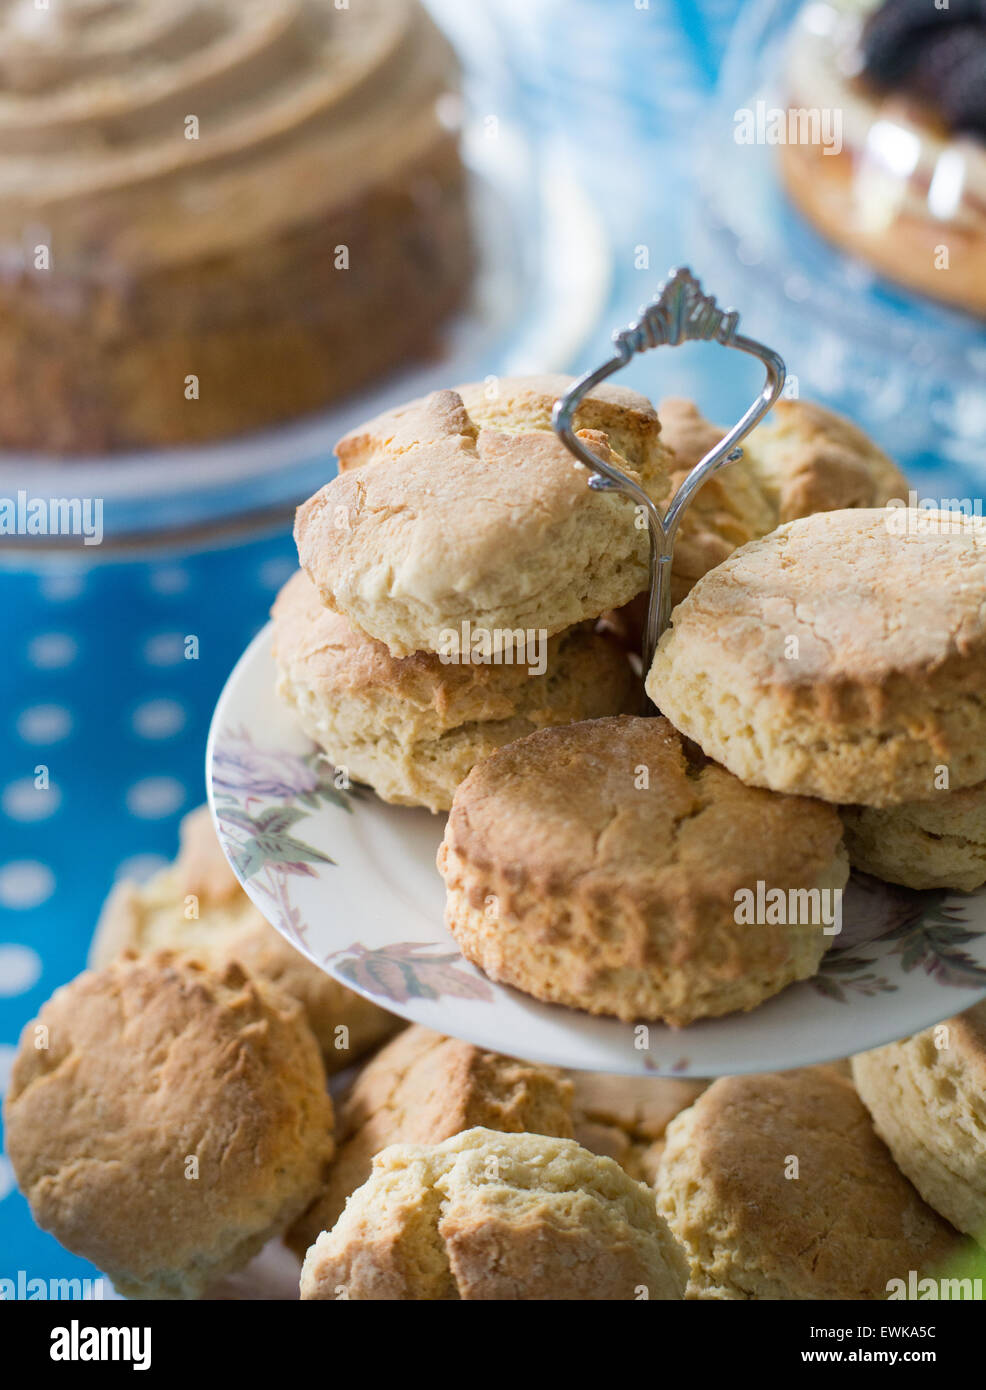 Scones on a Cake Stand - Stock Image